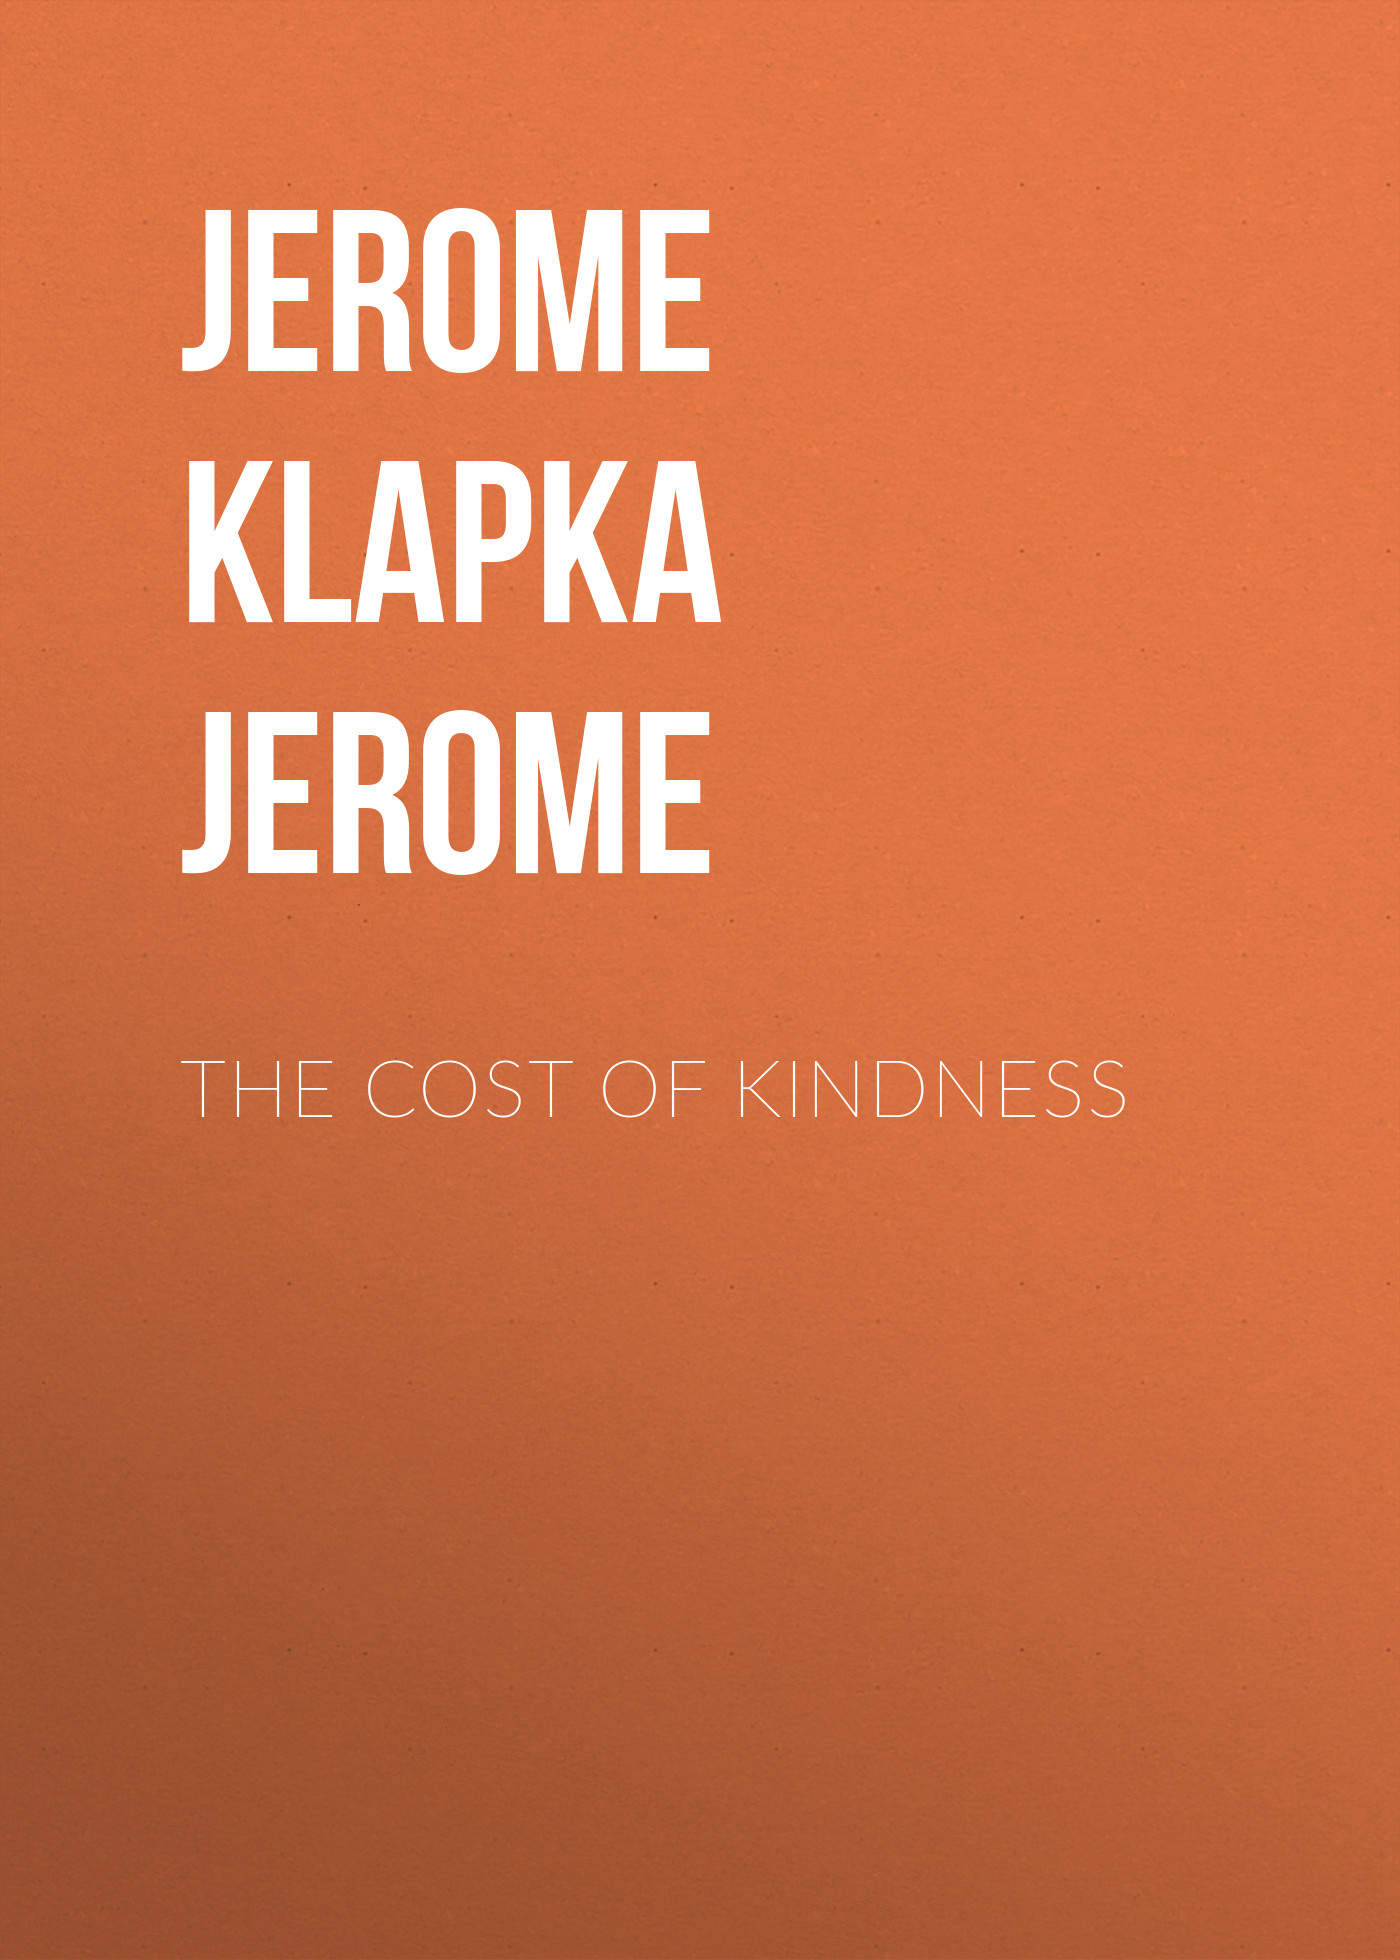 Джером Клапка Джером The Cost of Kindness джером клапка джером diary of a pilgrimage